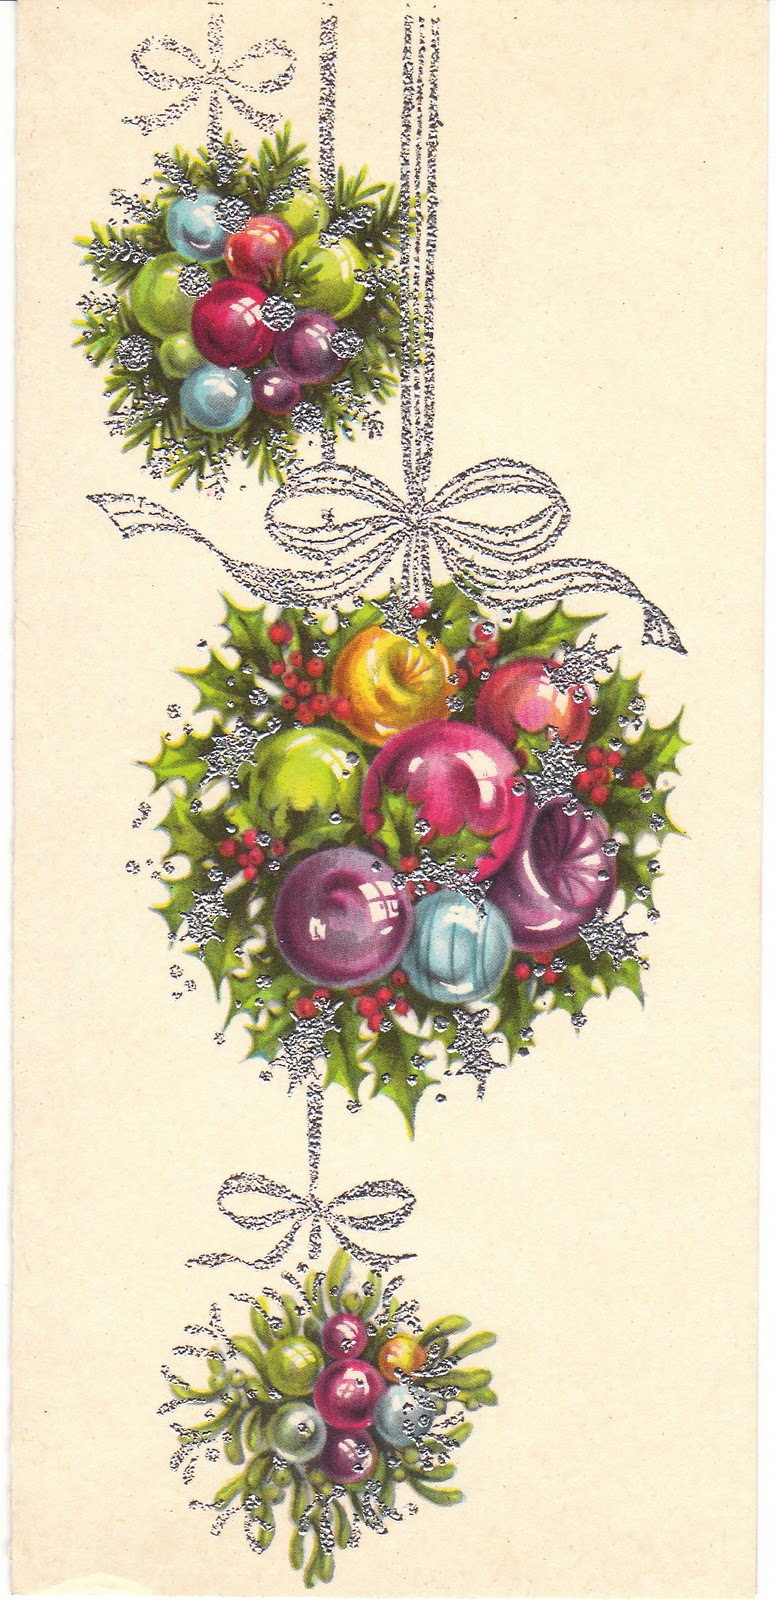 View from the Birdhouse: Mid Century Vintage Christmas Cards